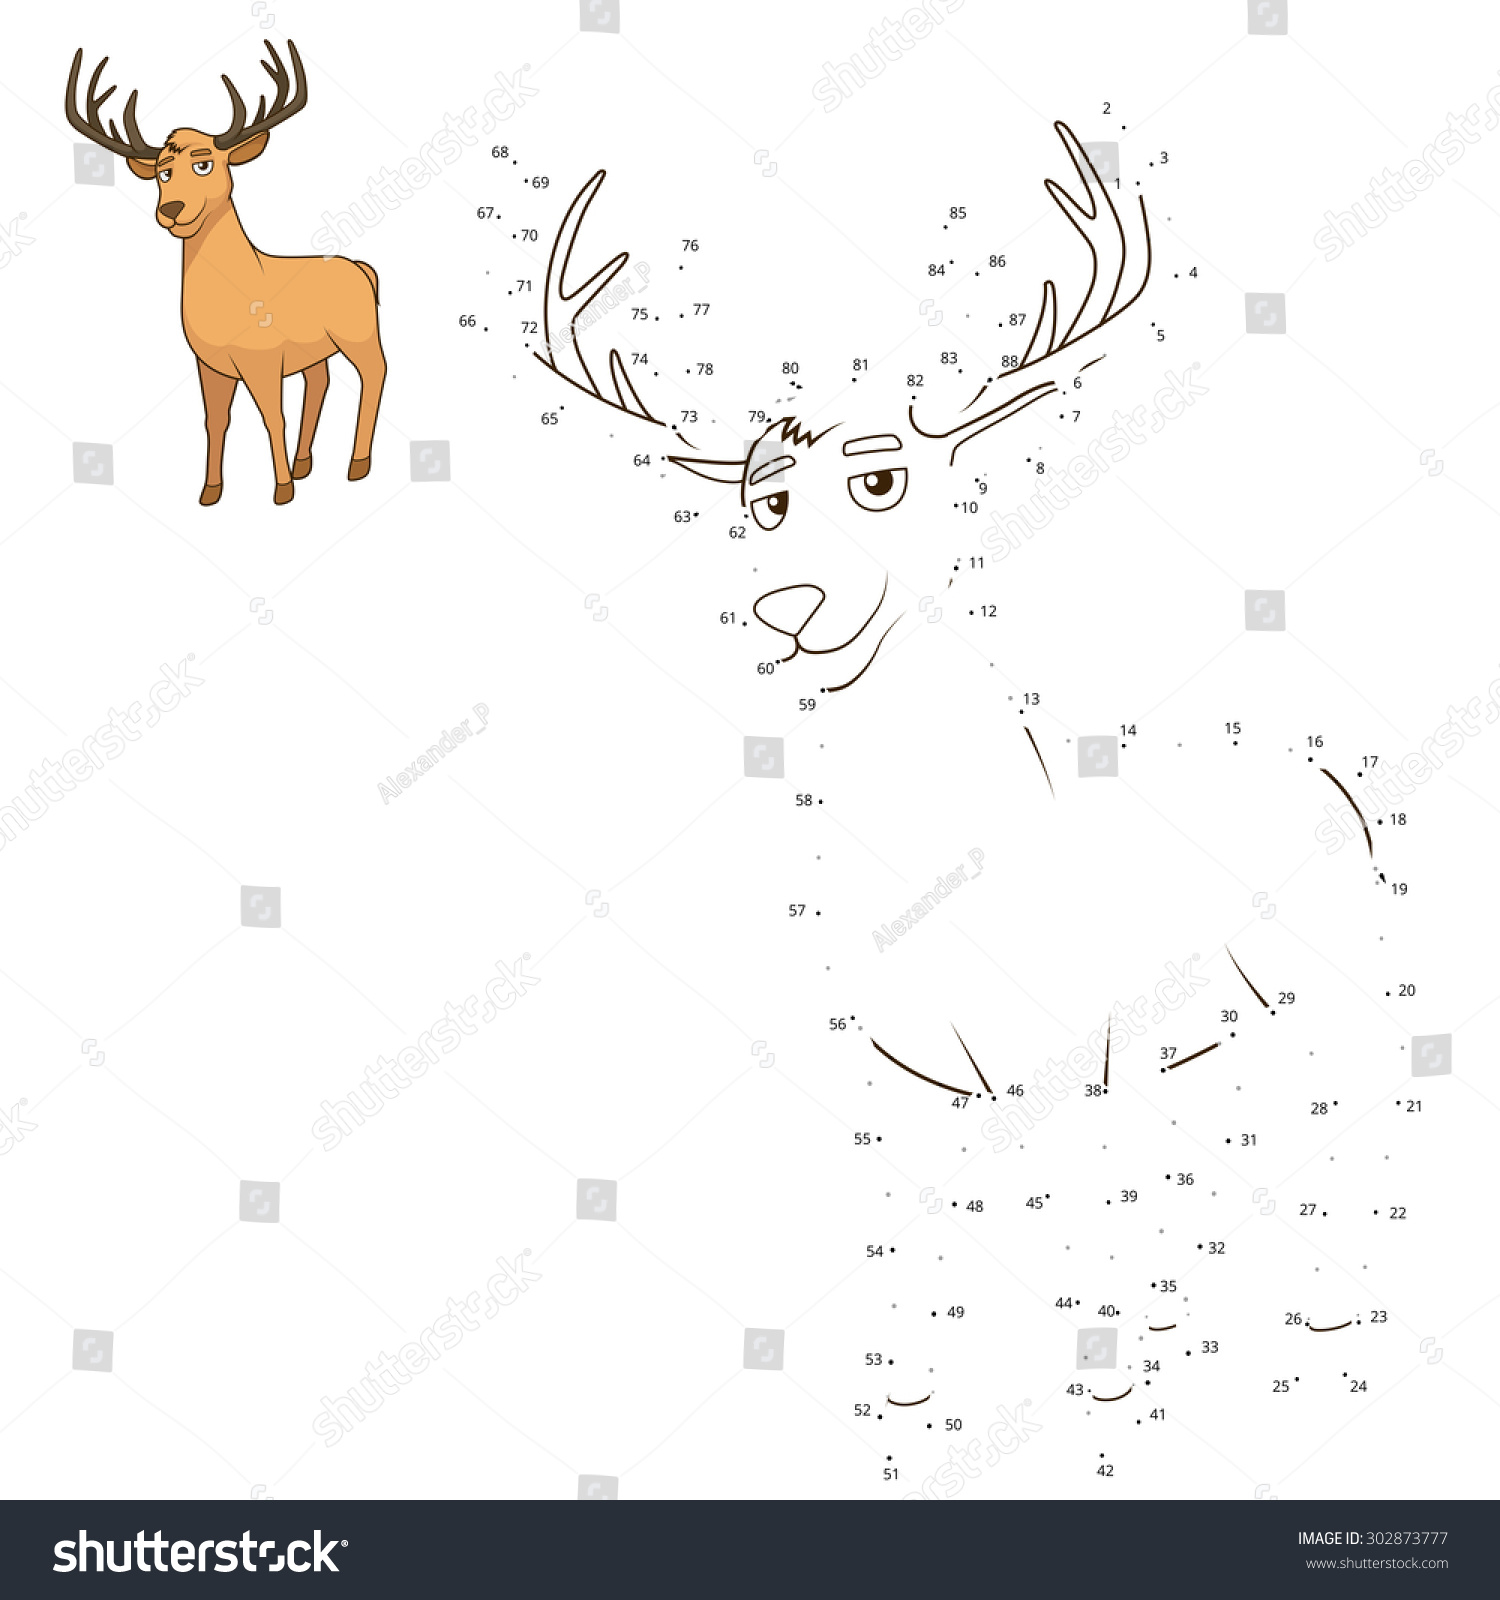 Connect Dots Draw Animal Educational Game Stock Vector